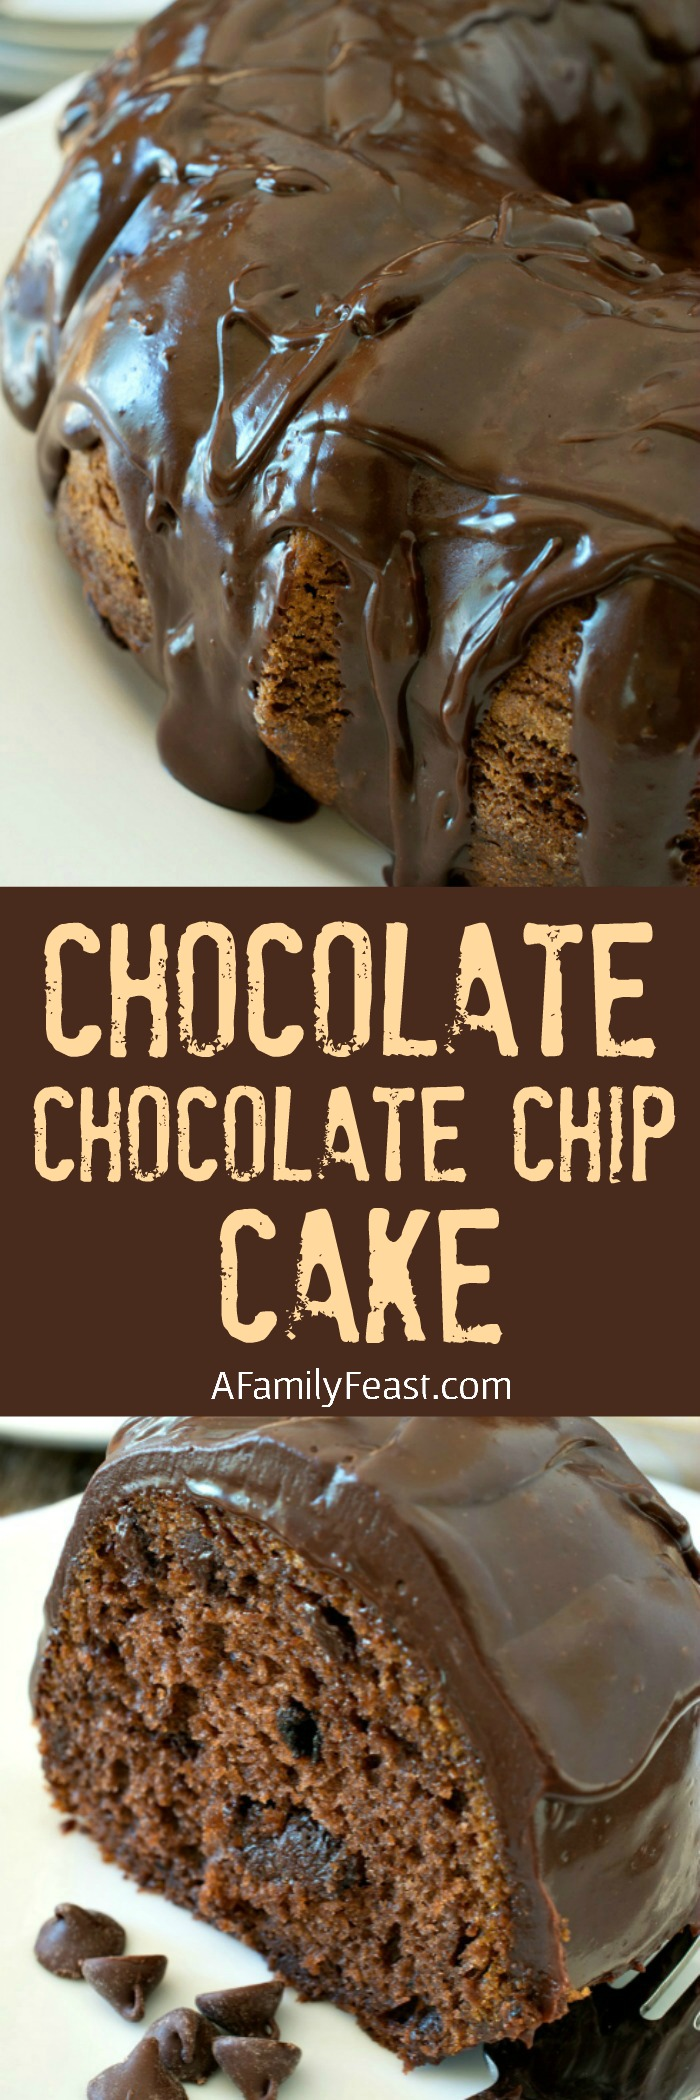 Kathy's Chocolate Chocolate Chip Cake - A Family Feast